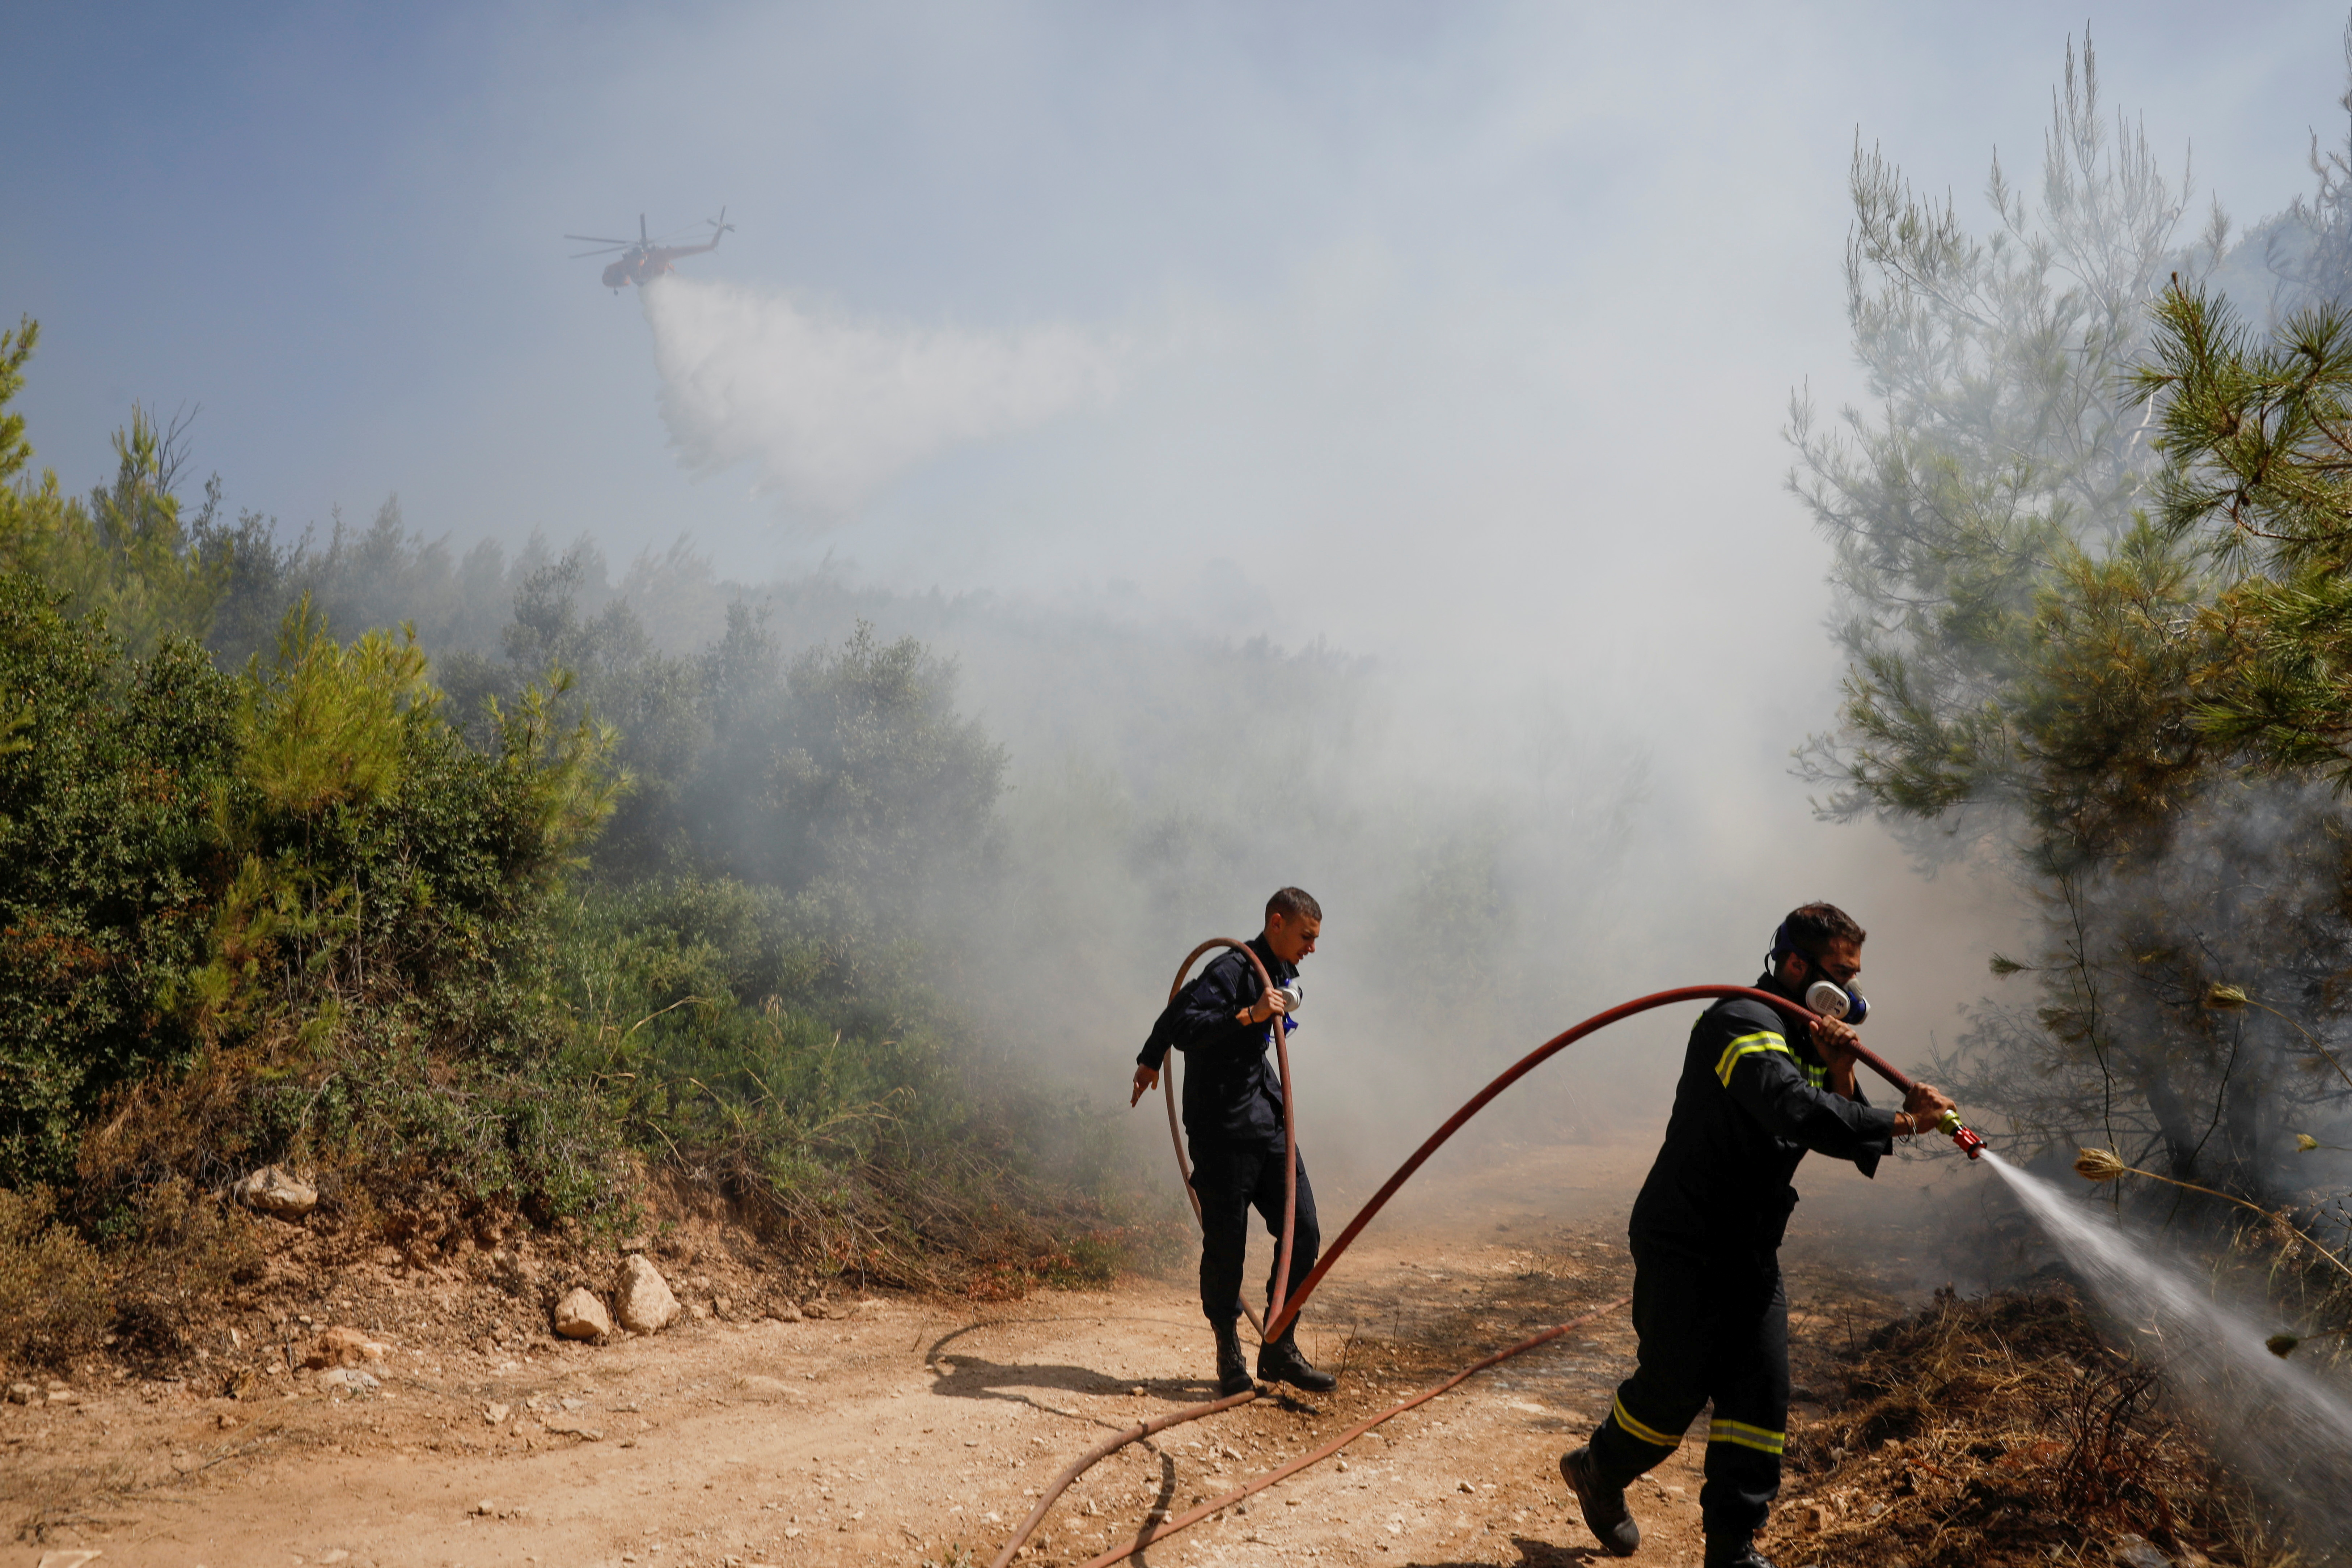 Firefighters spray water to extinguish a wildfire near the village of Rodopoli, north of Athens, Greece, July 27, 2021. REUTERS/Costas Baltas/File Photo